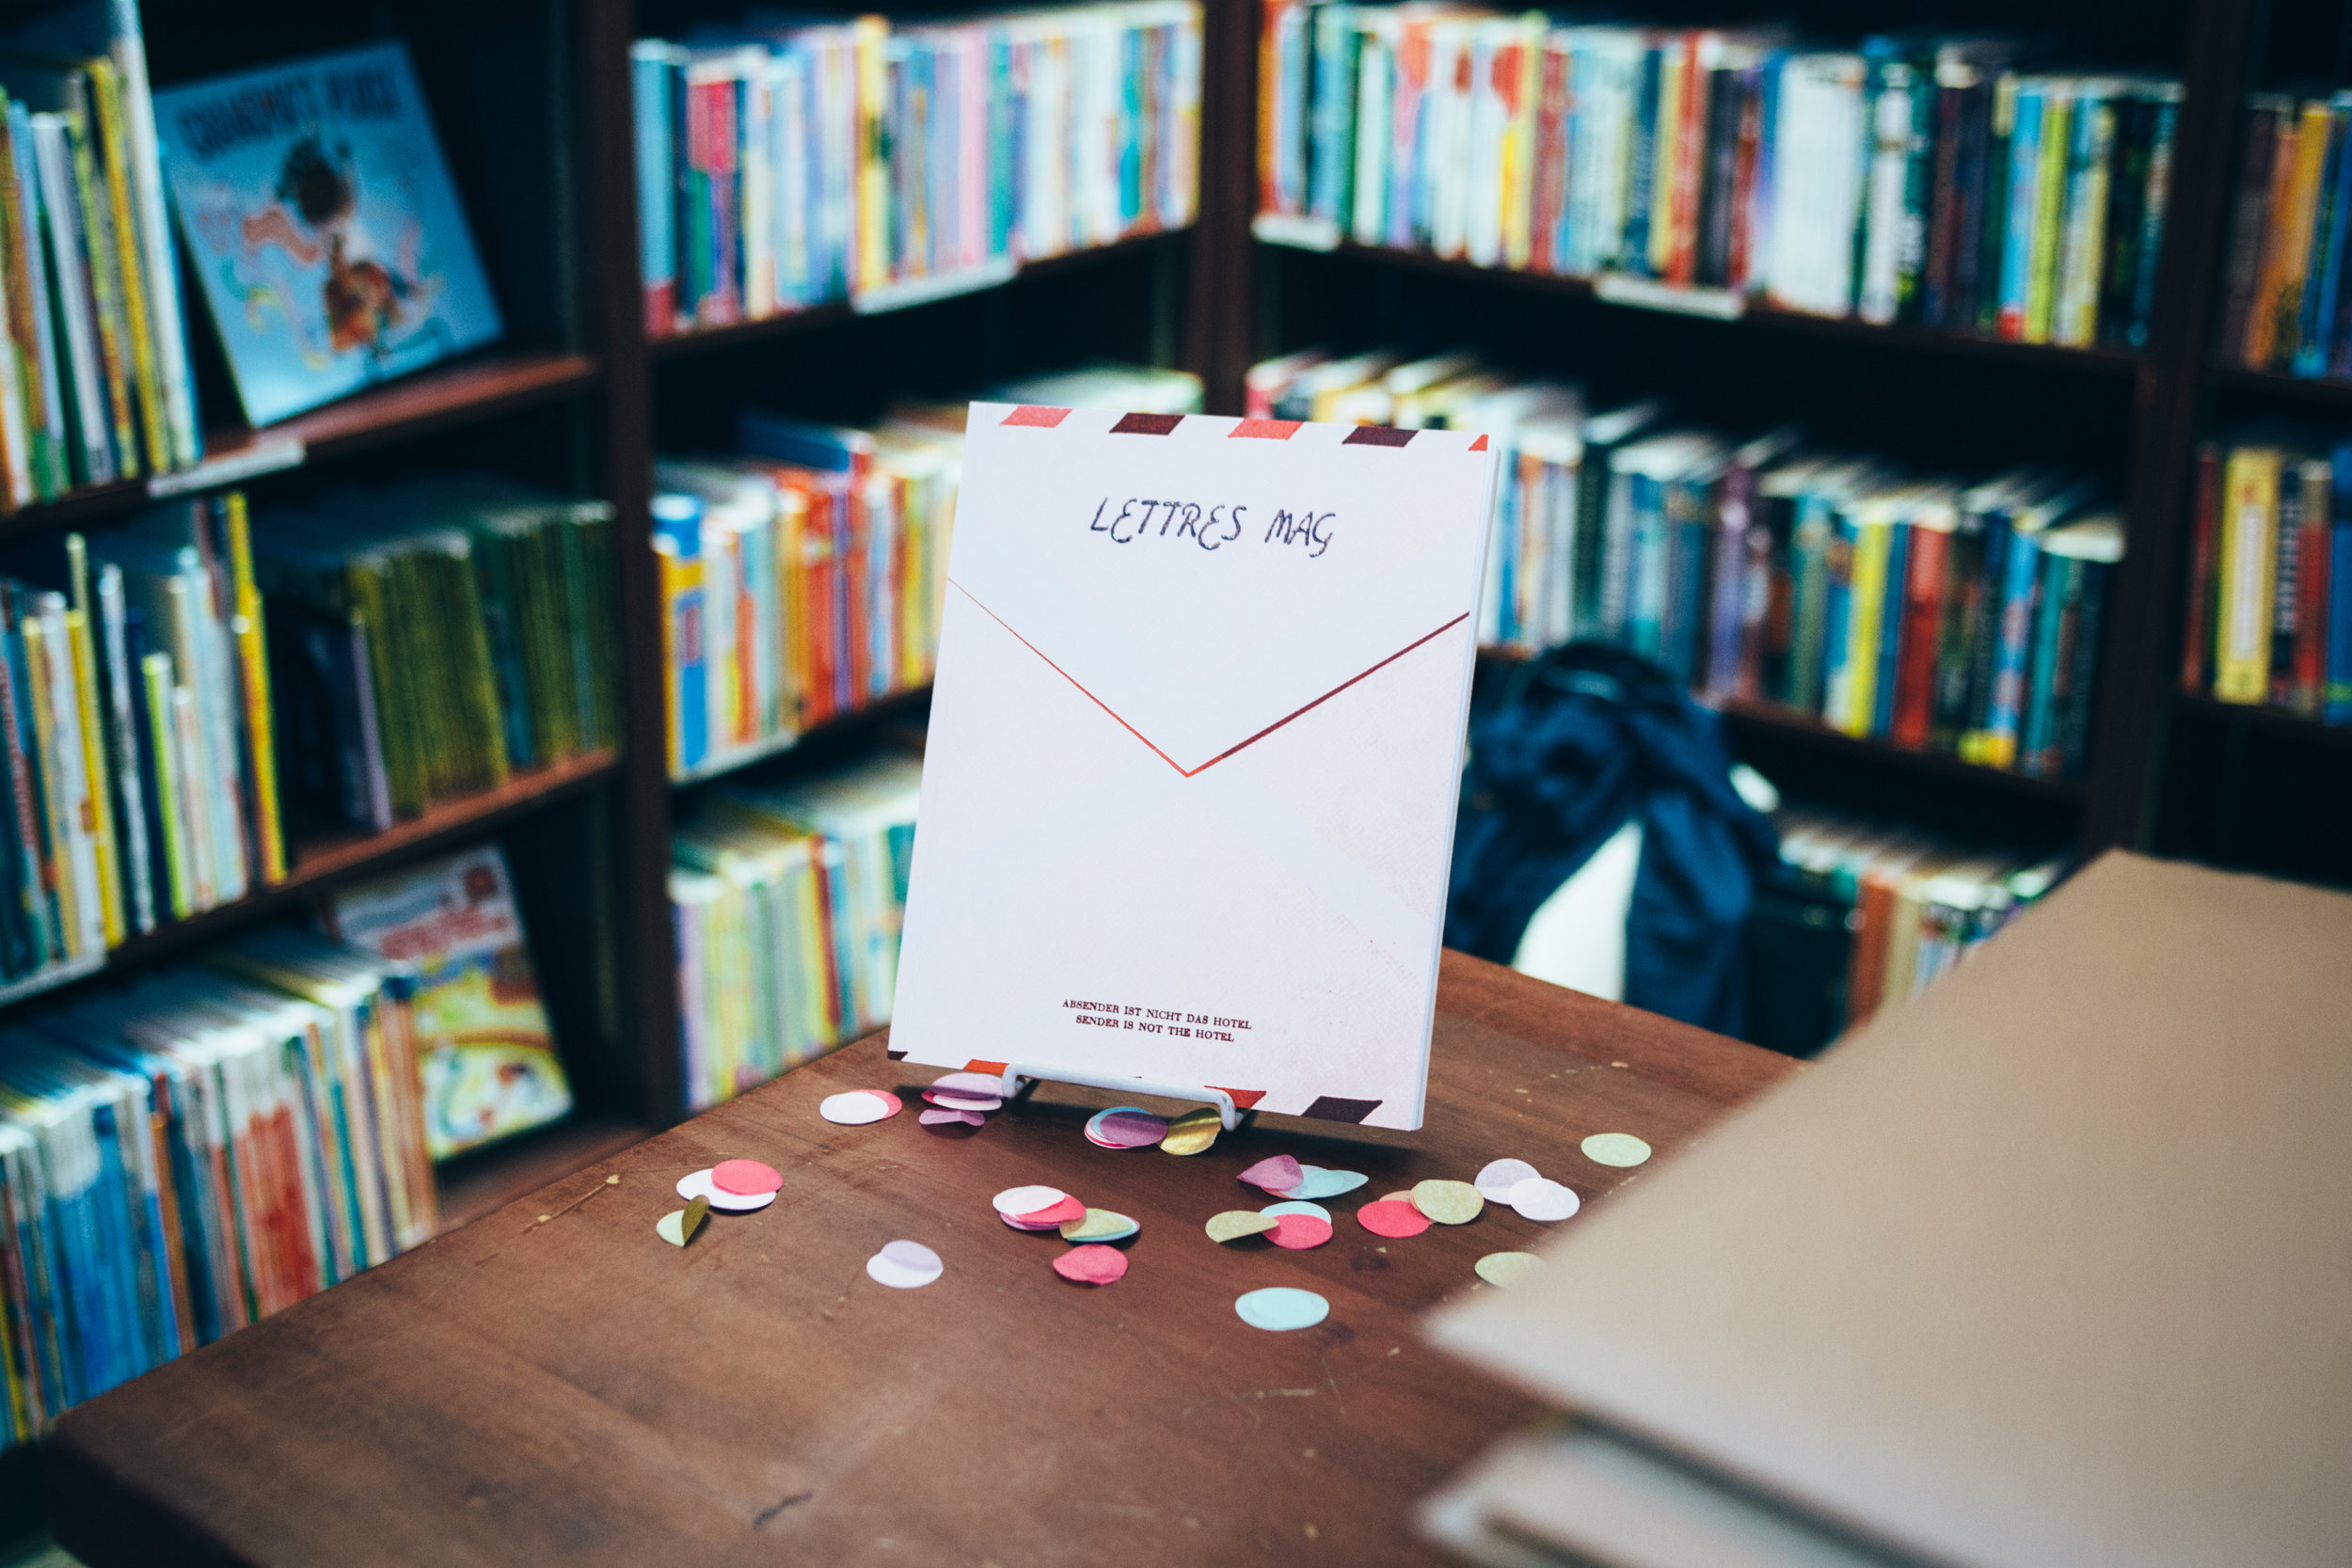 lettres mag launch housing works bookstore cafe nicole espina